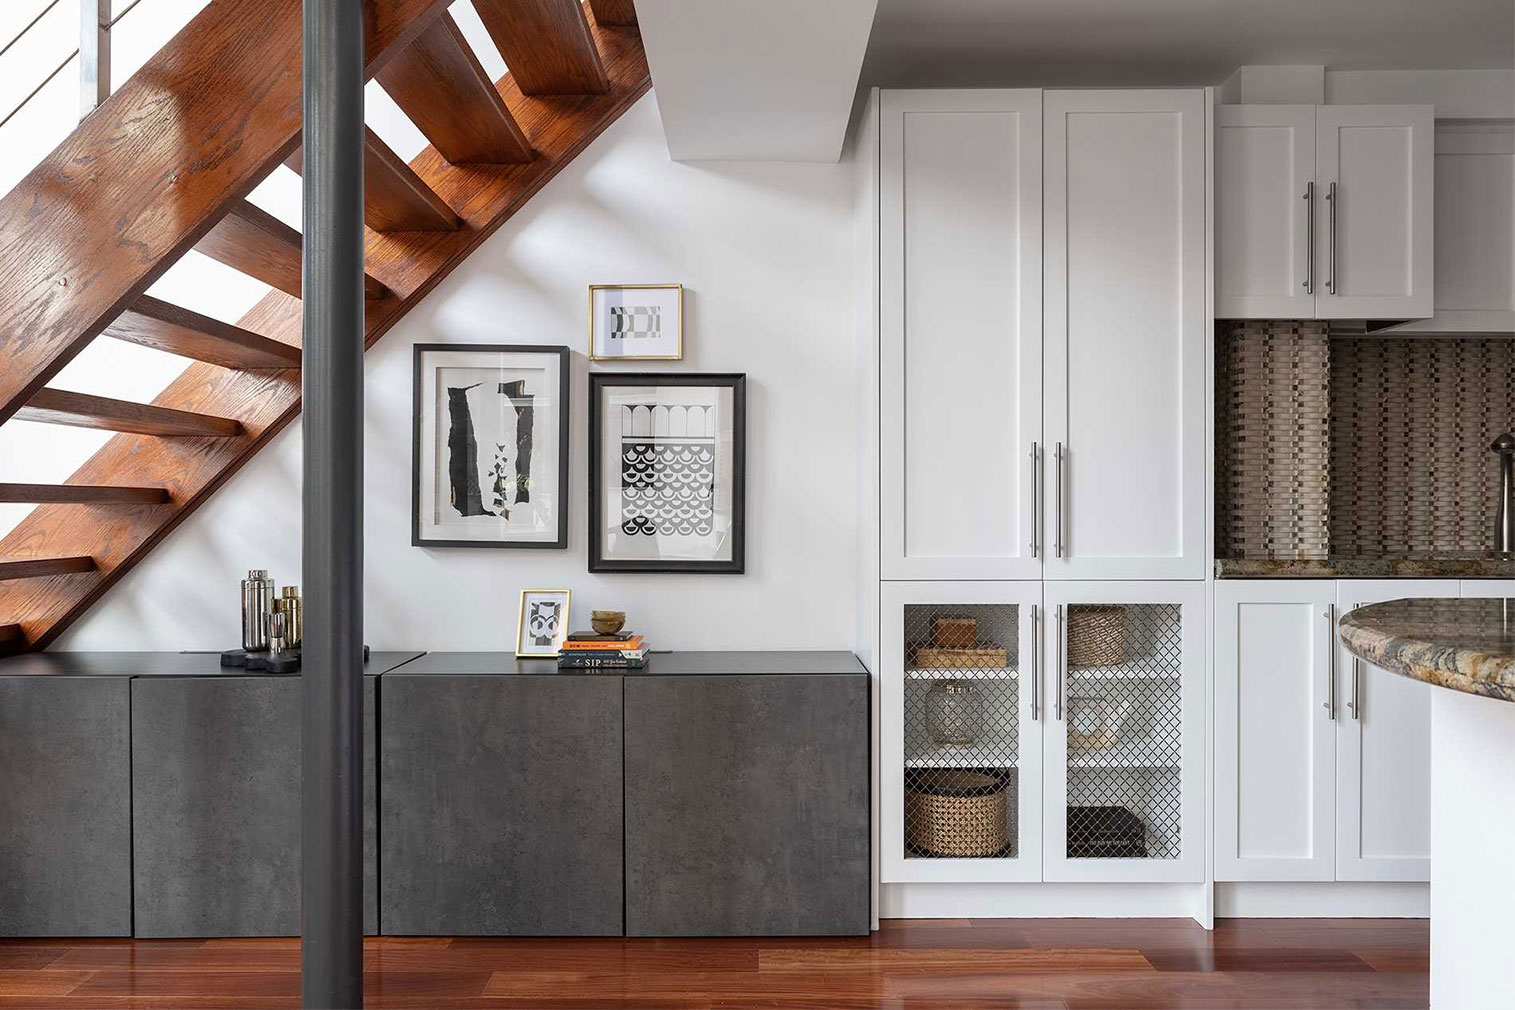 The apartment features a chef-grade kitchen